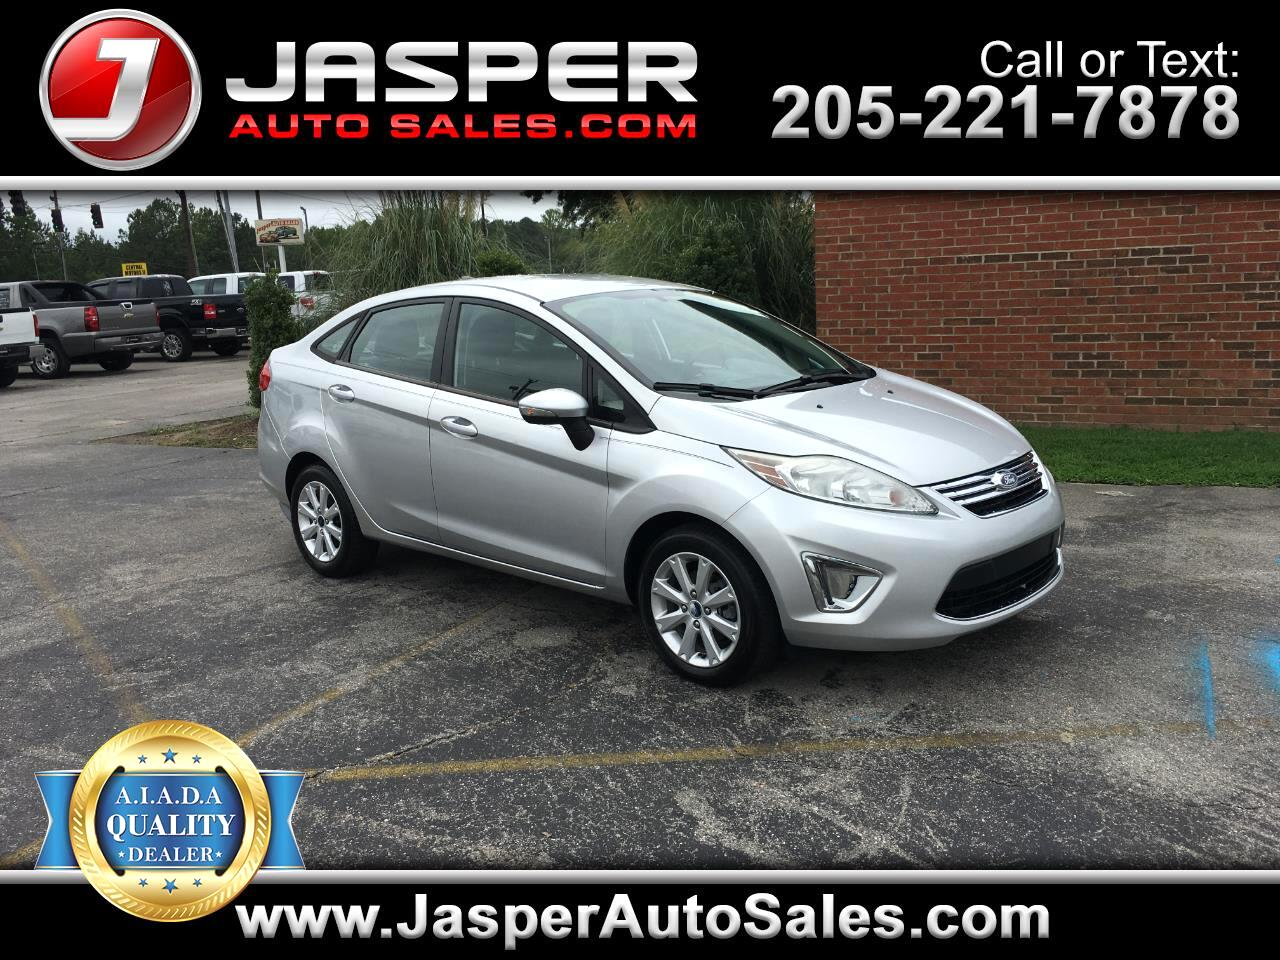 2011 Ford Fiesta 4dr Sdn SEL